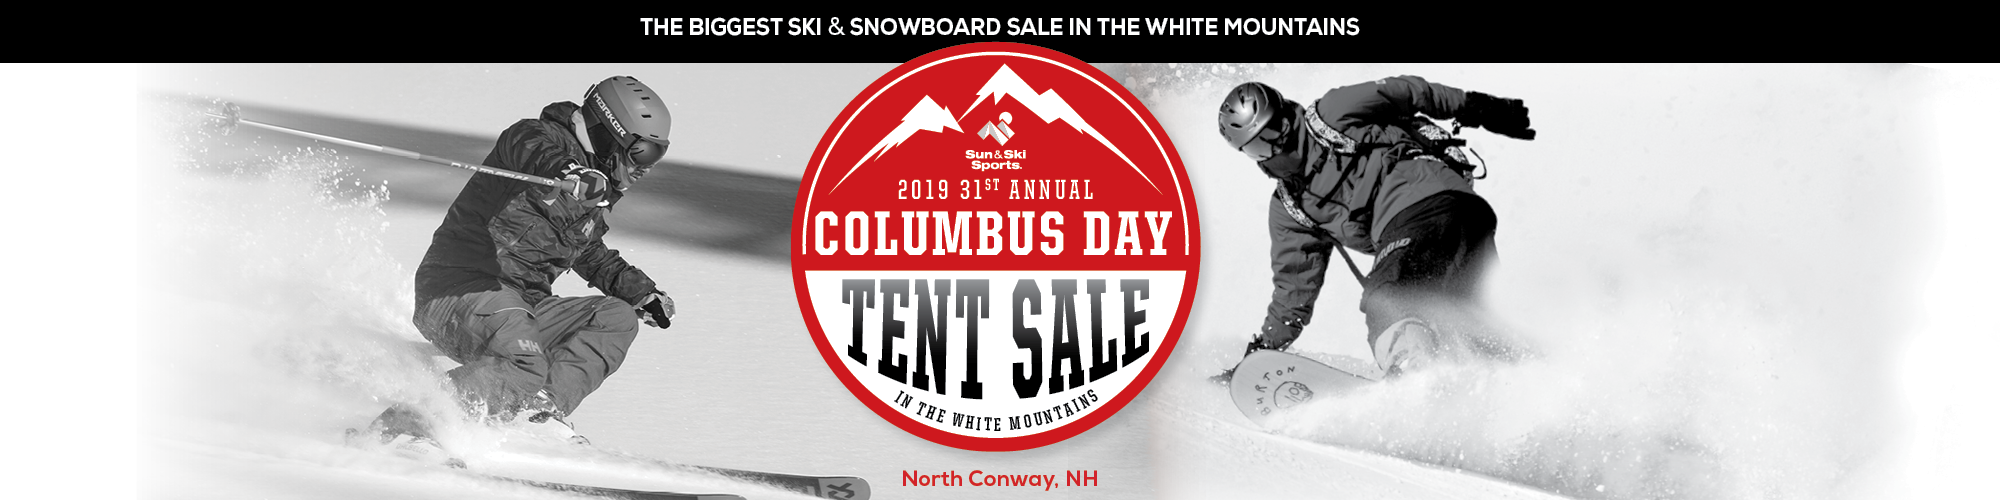 Columbus Day Tent Sale. The biggest ski & snowboard sale in the white mountains.